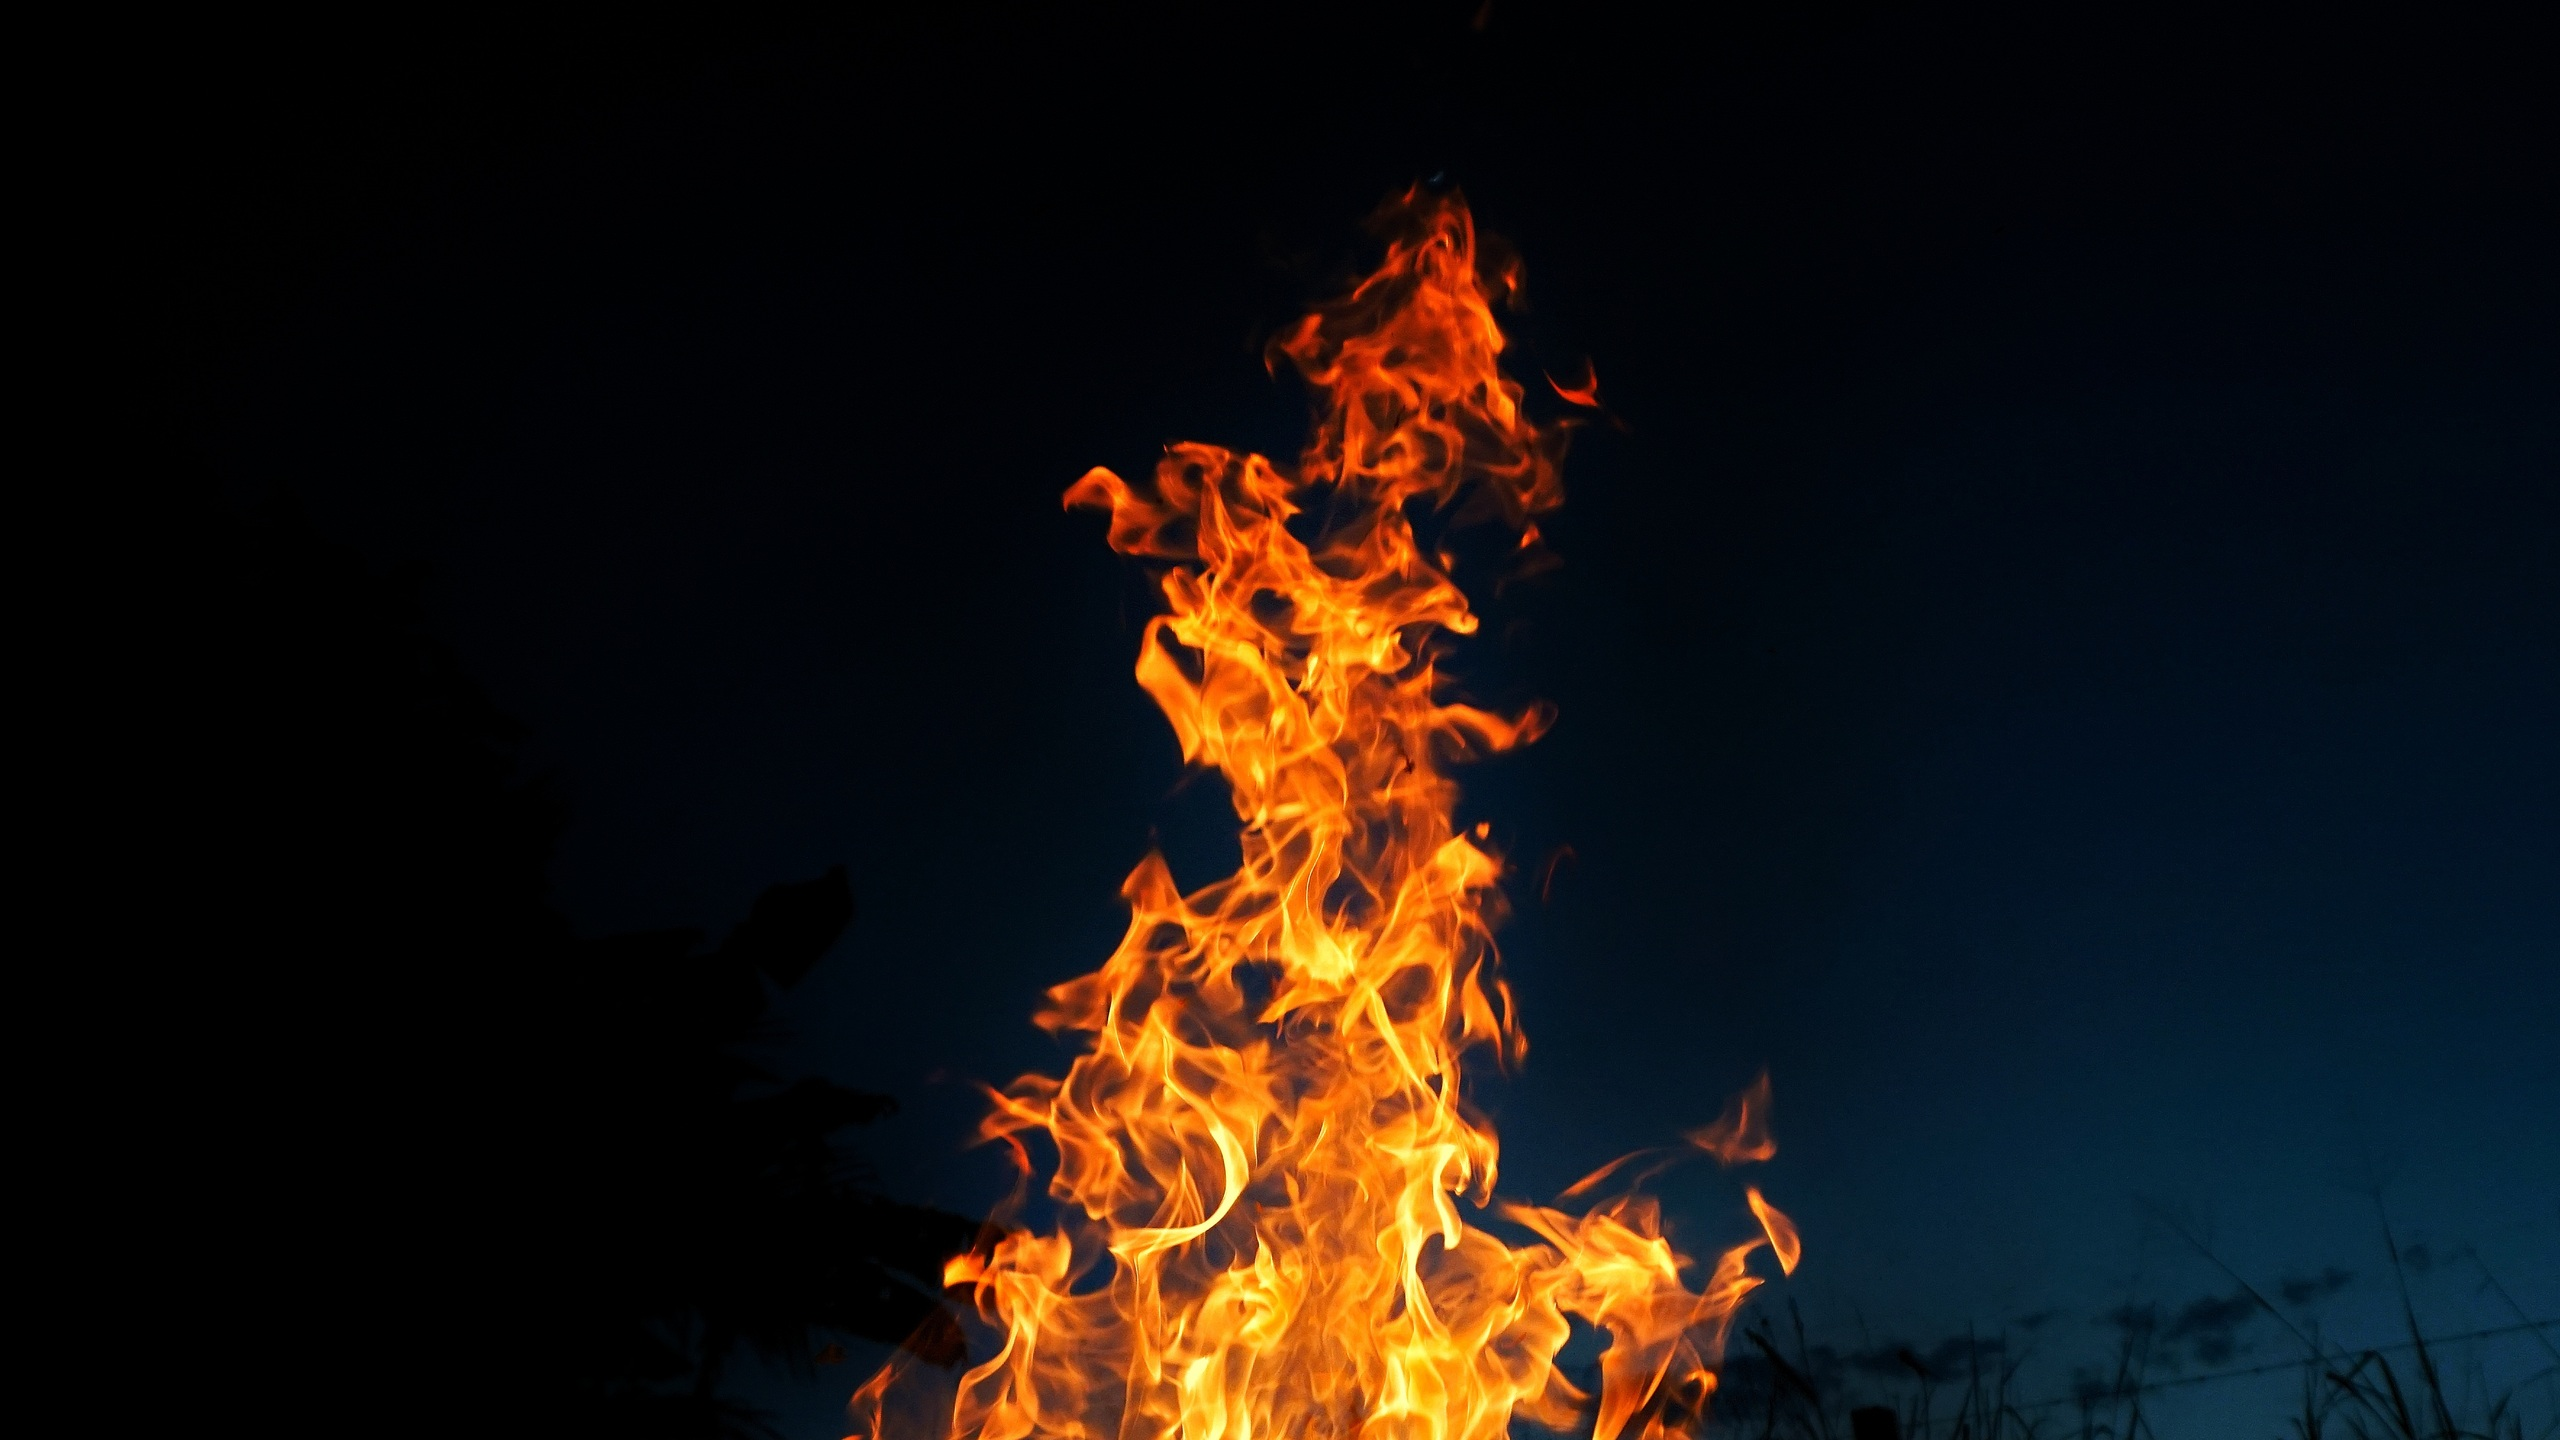 2560x1440 fire burning 1440p resolution hd 4k wallpapers images